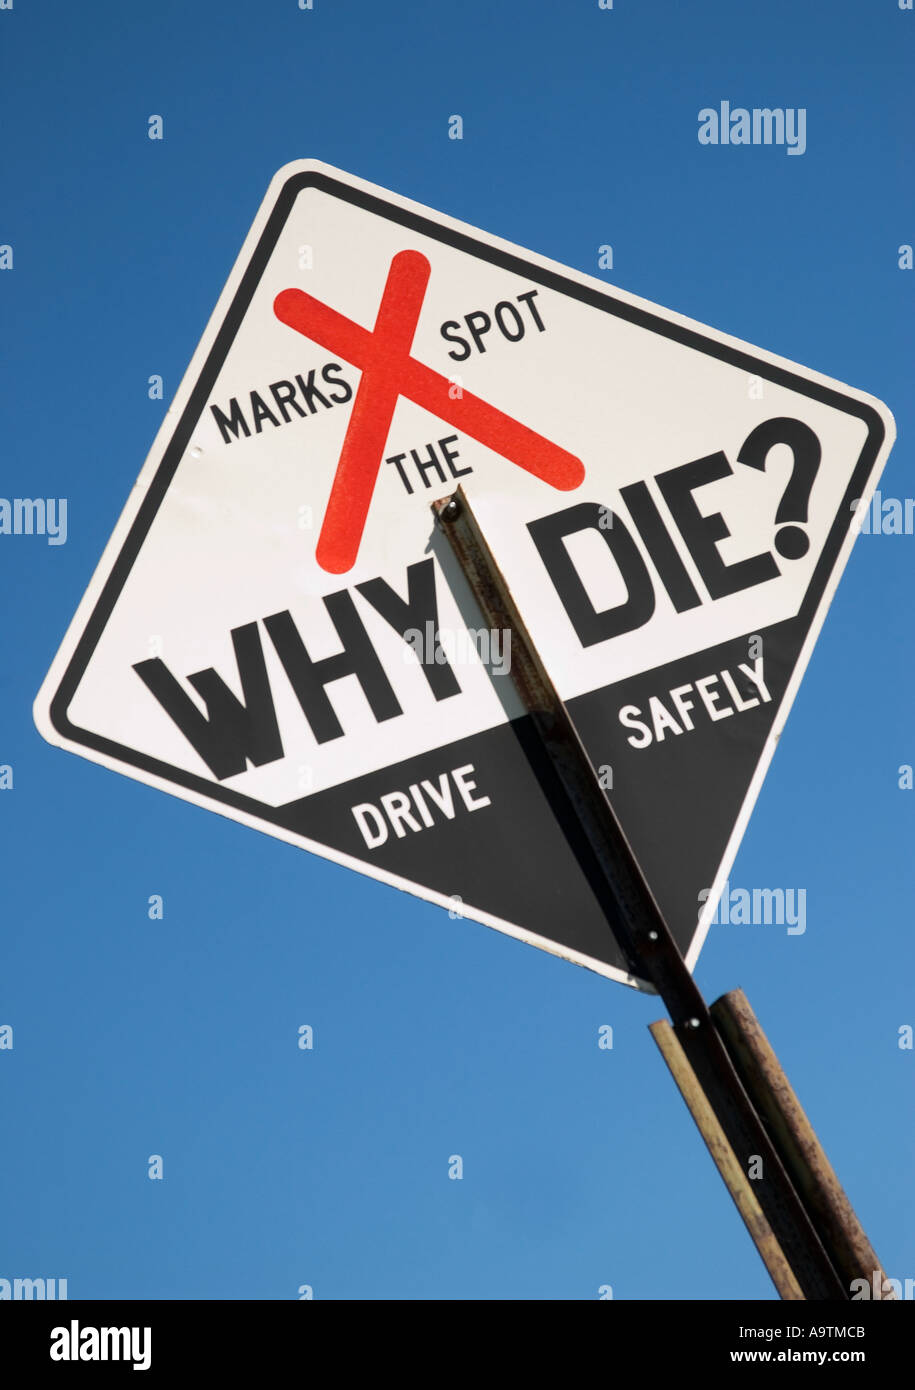 Stock photo of Fatality markers on highway,USA - Stock Image